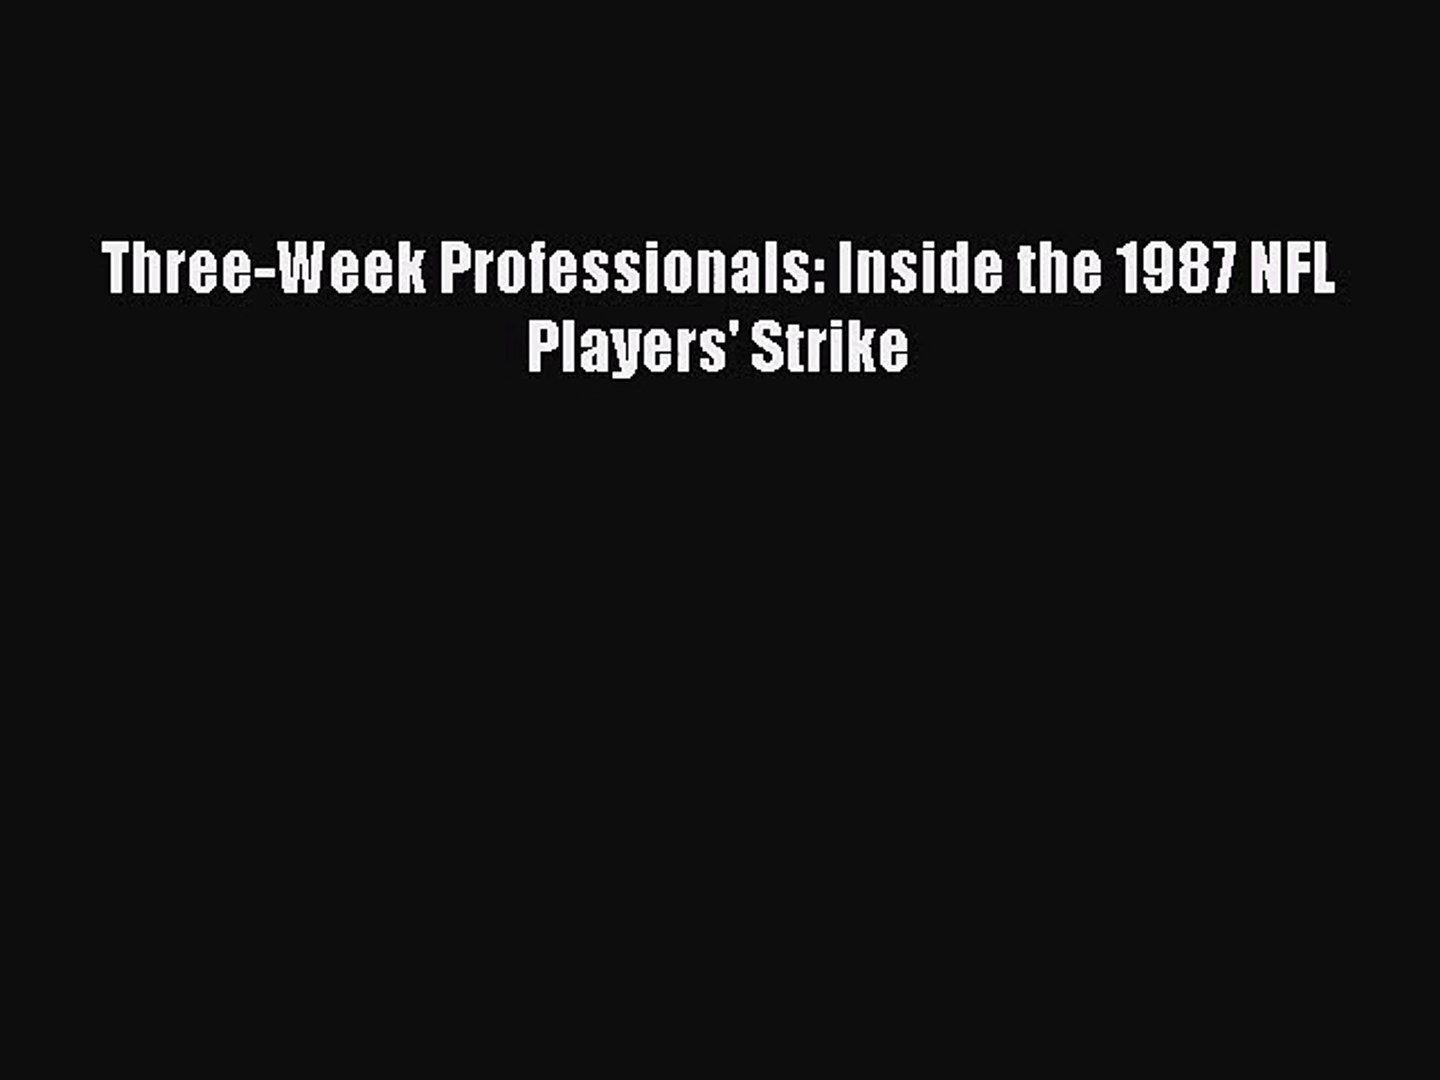 Three-Week Professionals: Inside the 1987 NFL Players' Strike  Free Books